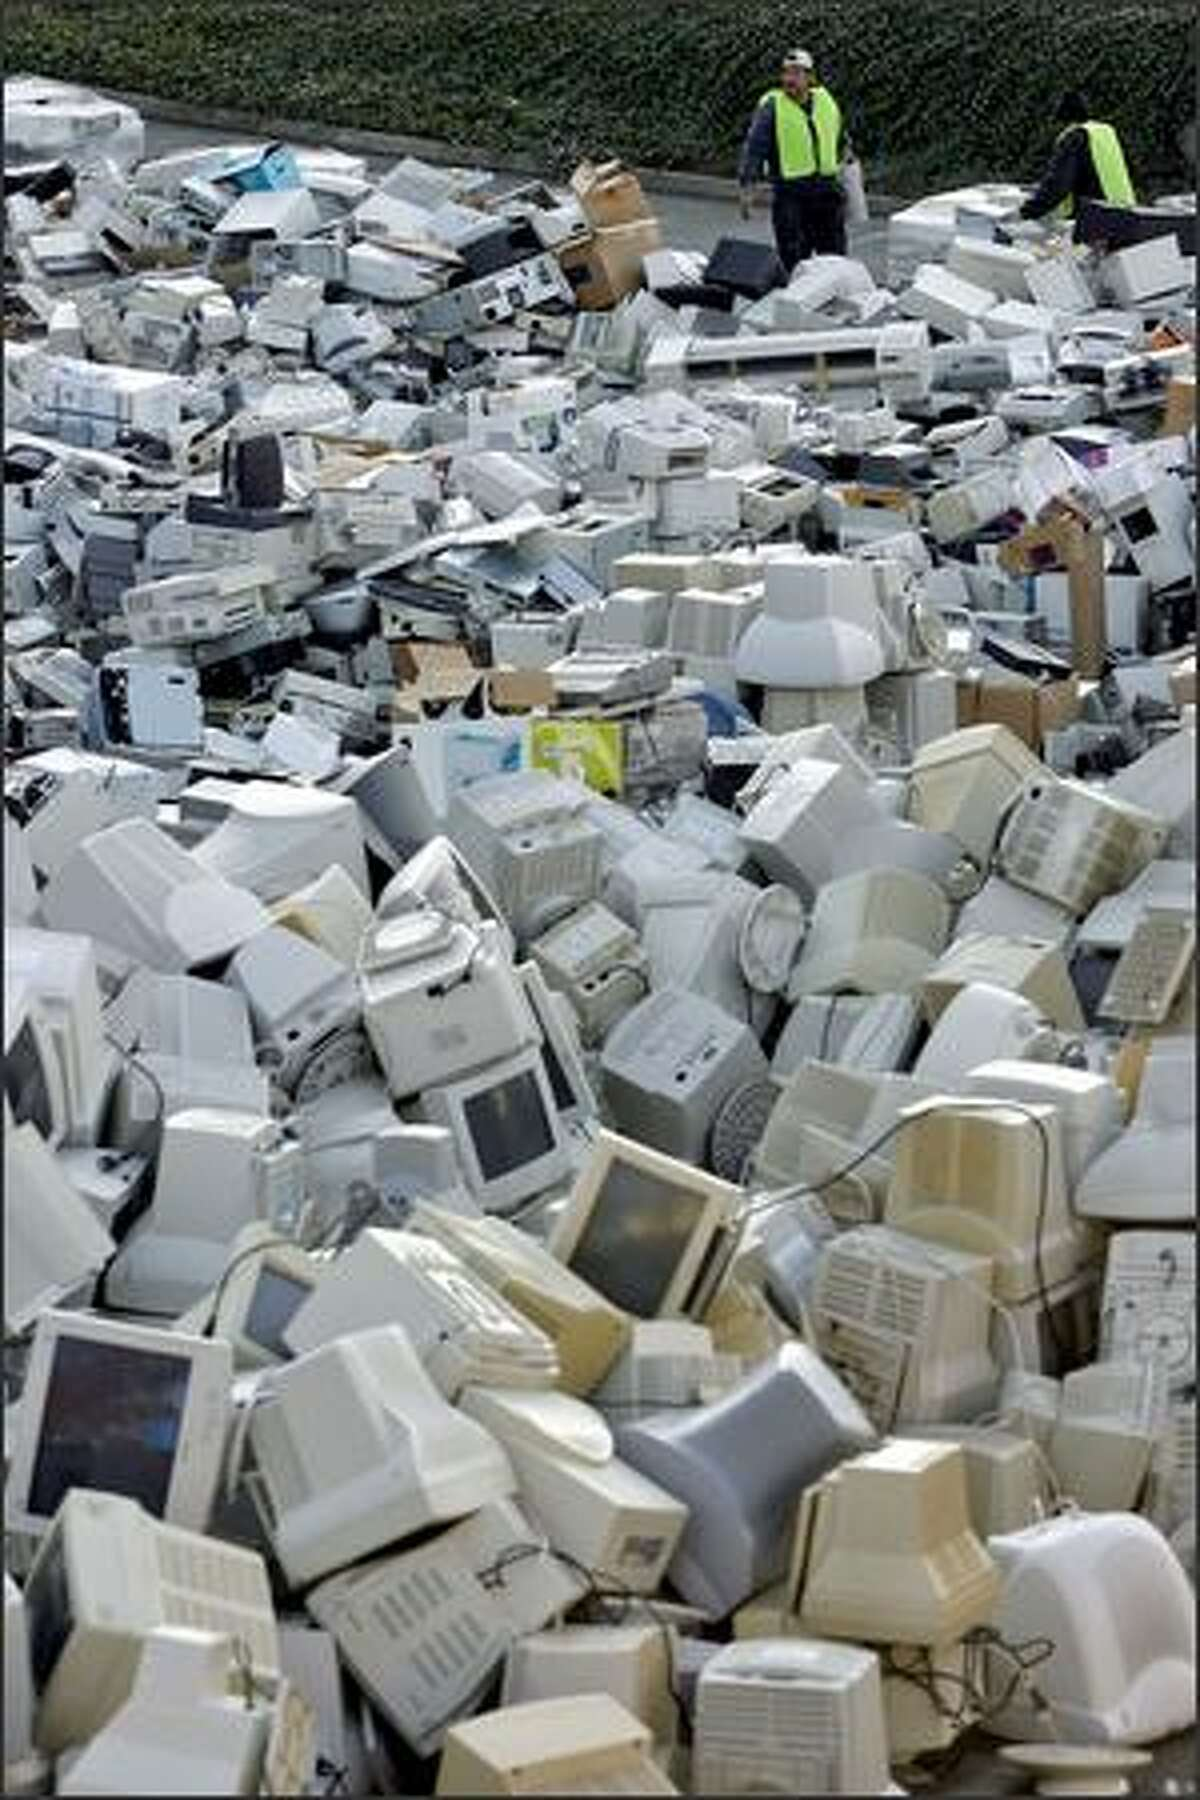 The amount of electronic waste brought to a free recycling event at Seattle Pacific University far exceeded what organizer Jason Purcell expected.